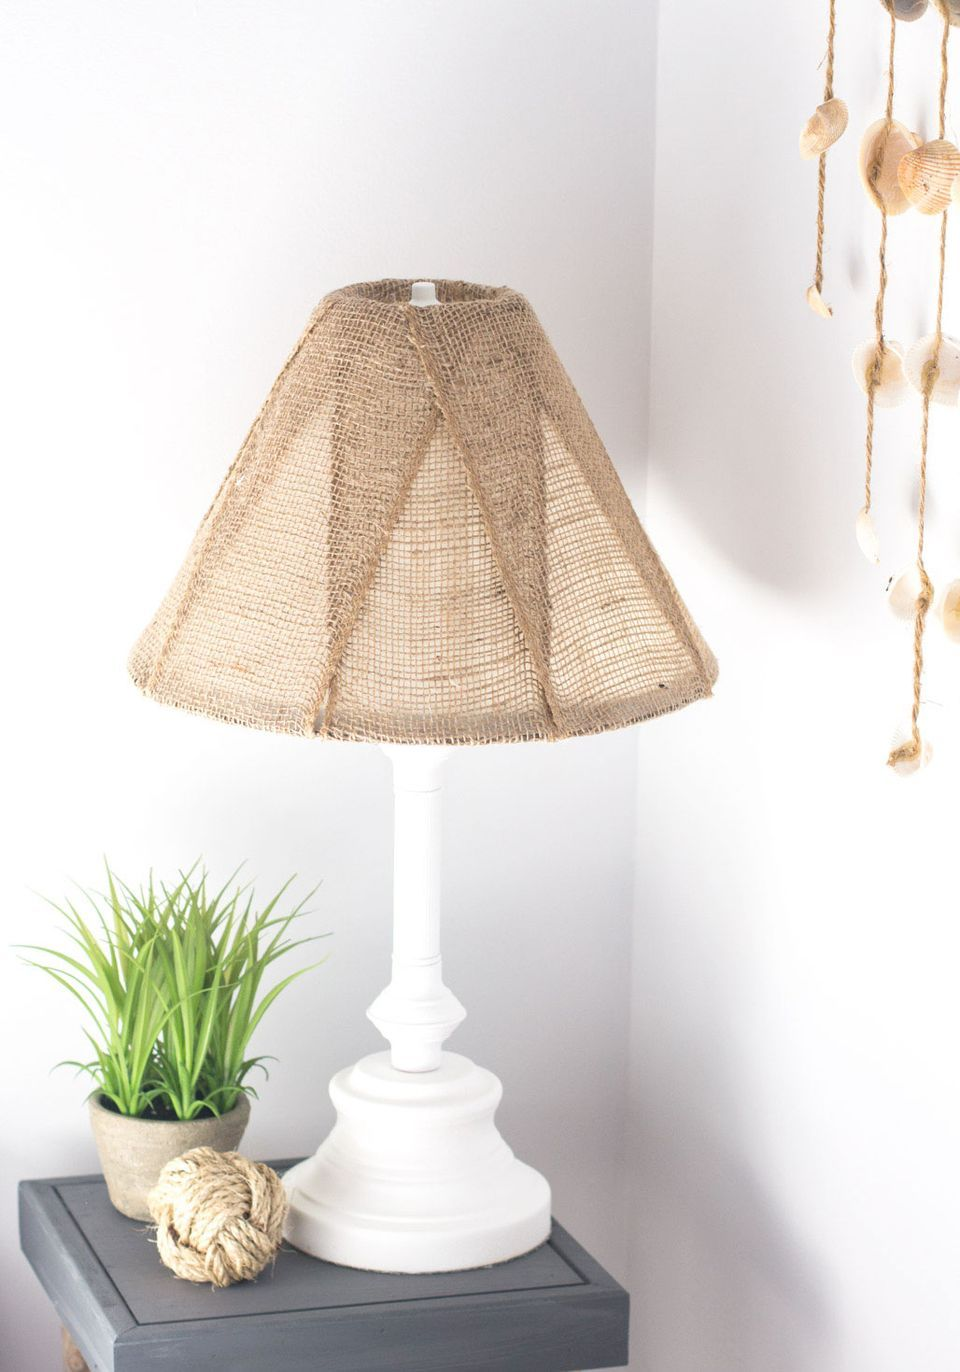 Popular Diy Projects Burlap Lampshade Lampshade Makeover Lamp Makeover